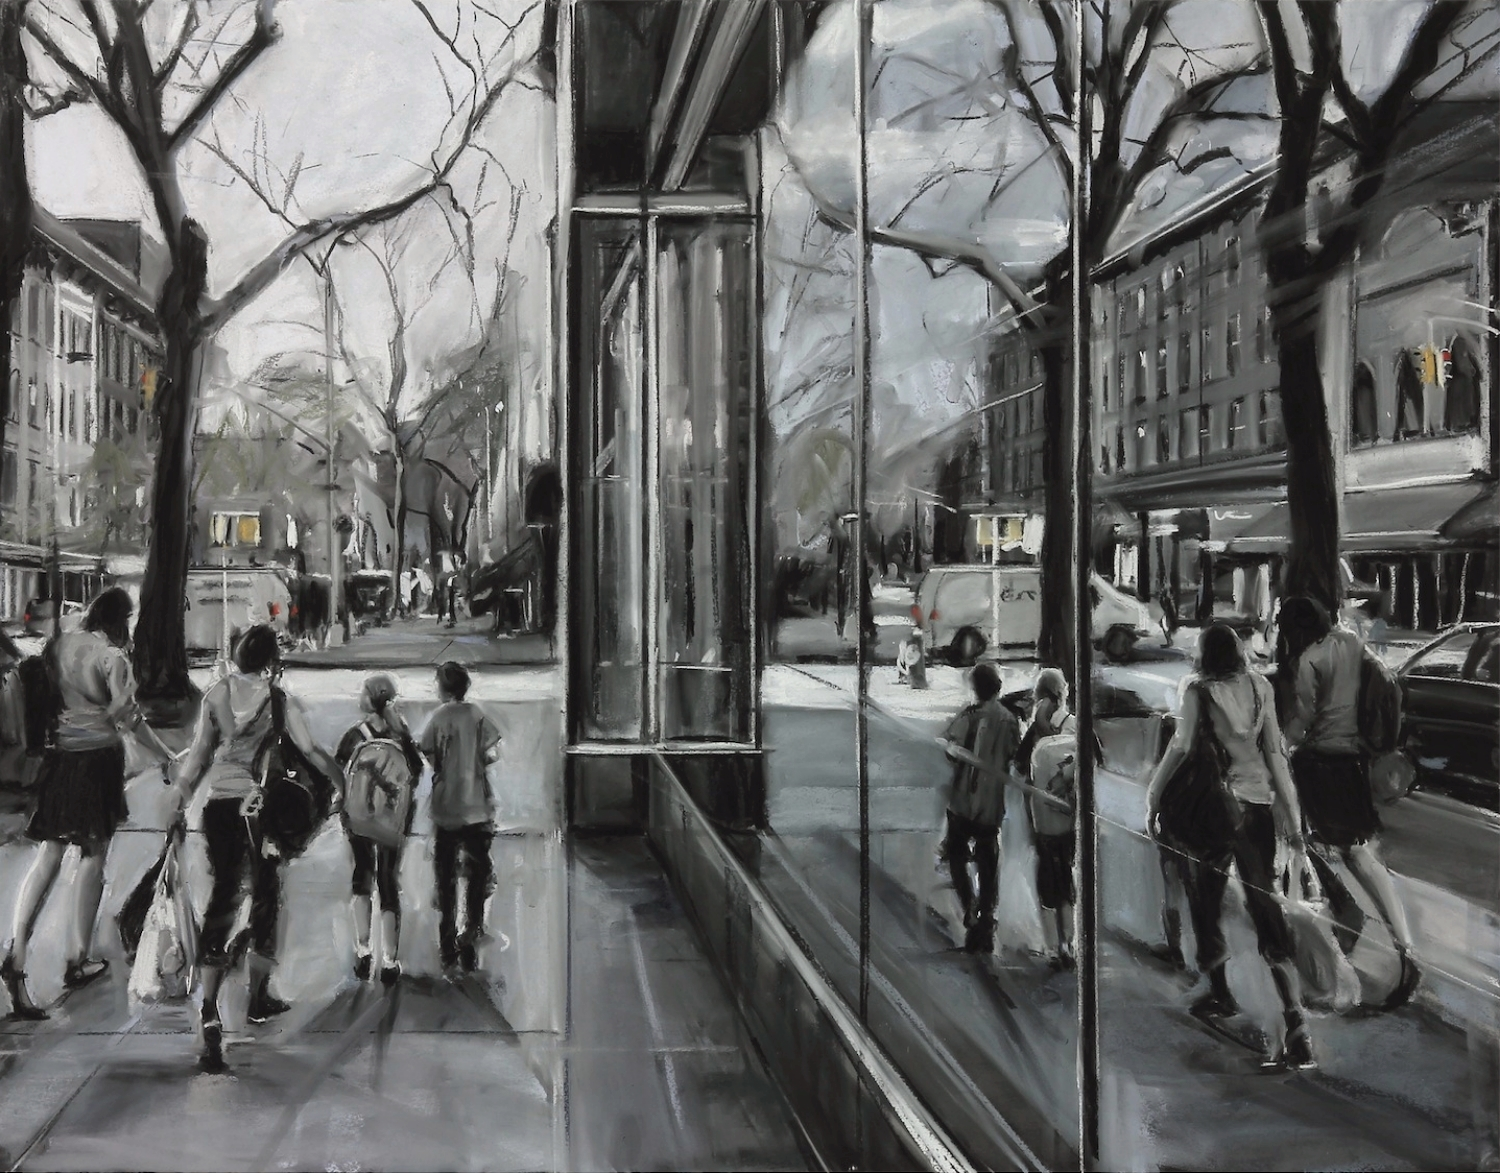 Susan Grossman      Reflect,   2015 Charcoal & pastel on artist board 35 x 45 inches